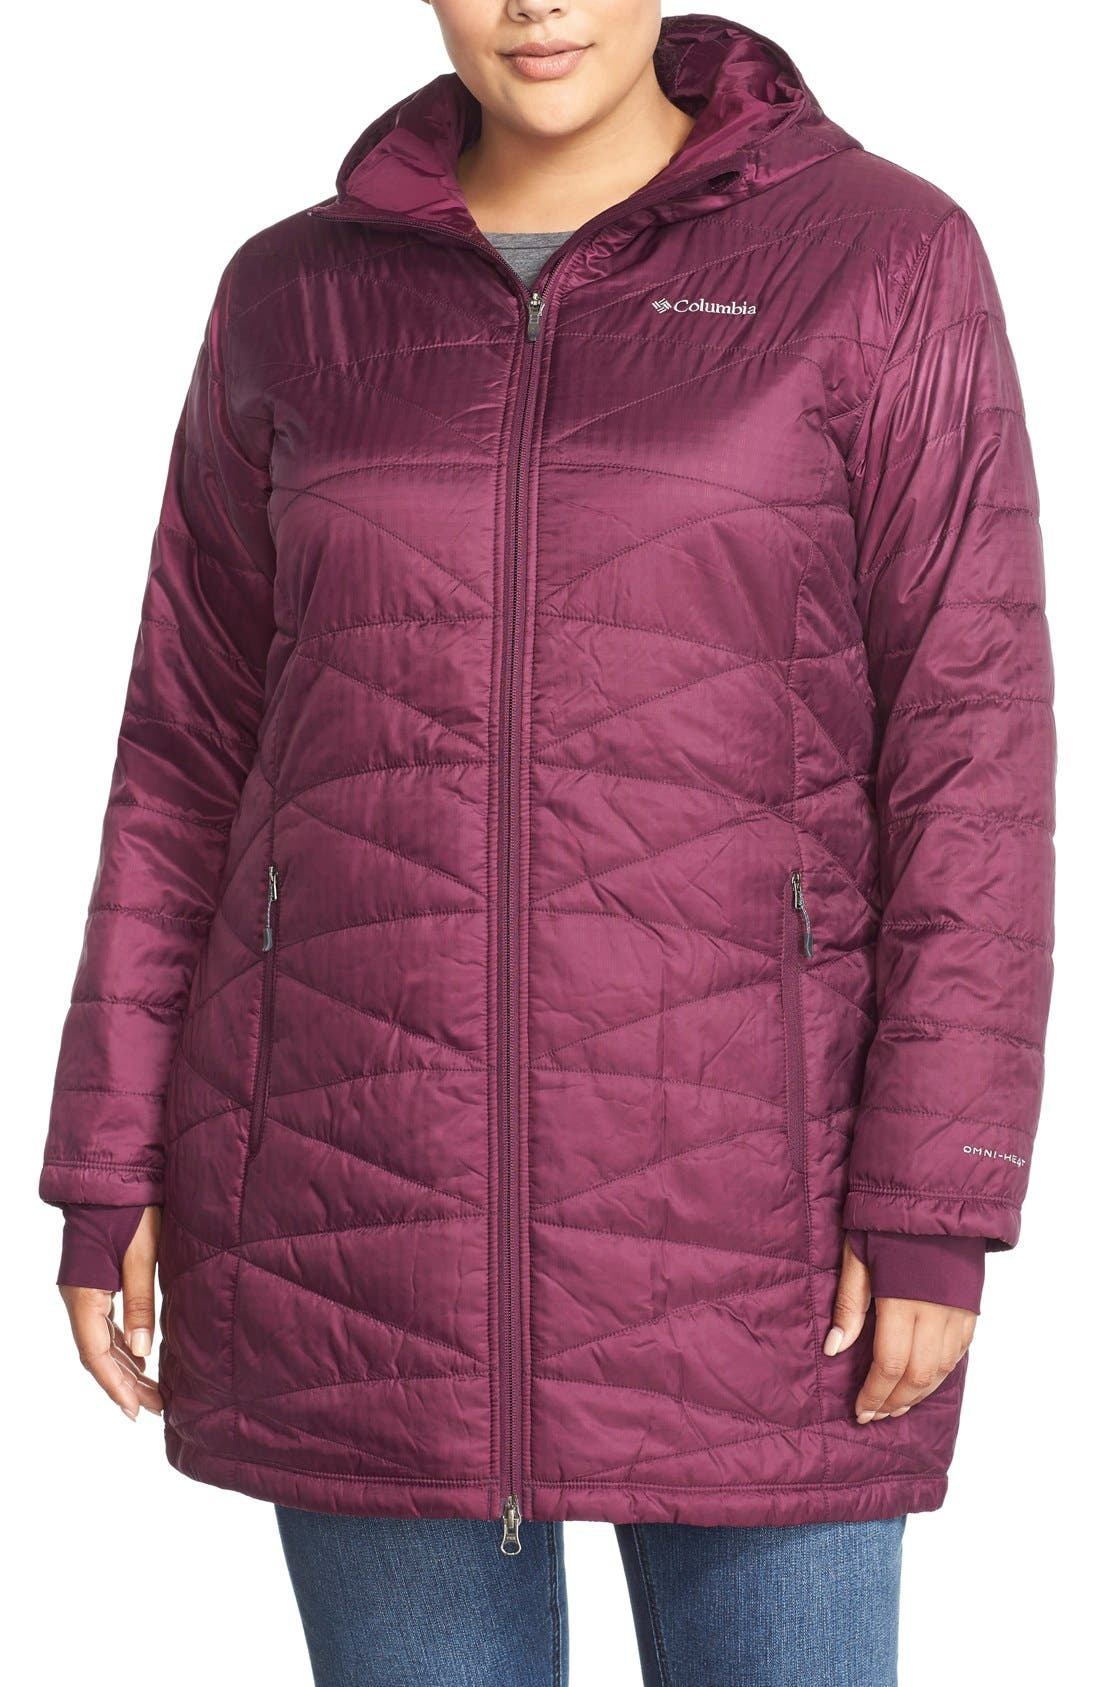 Mighty Lite Hooded Jacket,                             Main thumbnail 5, color,